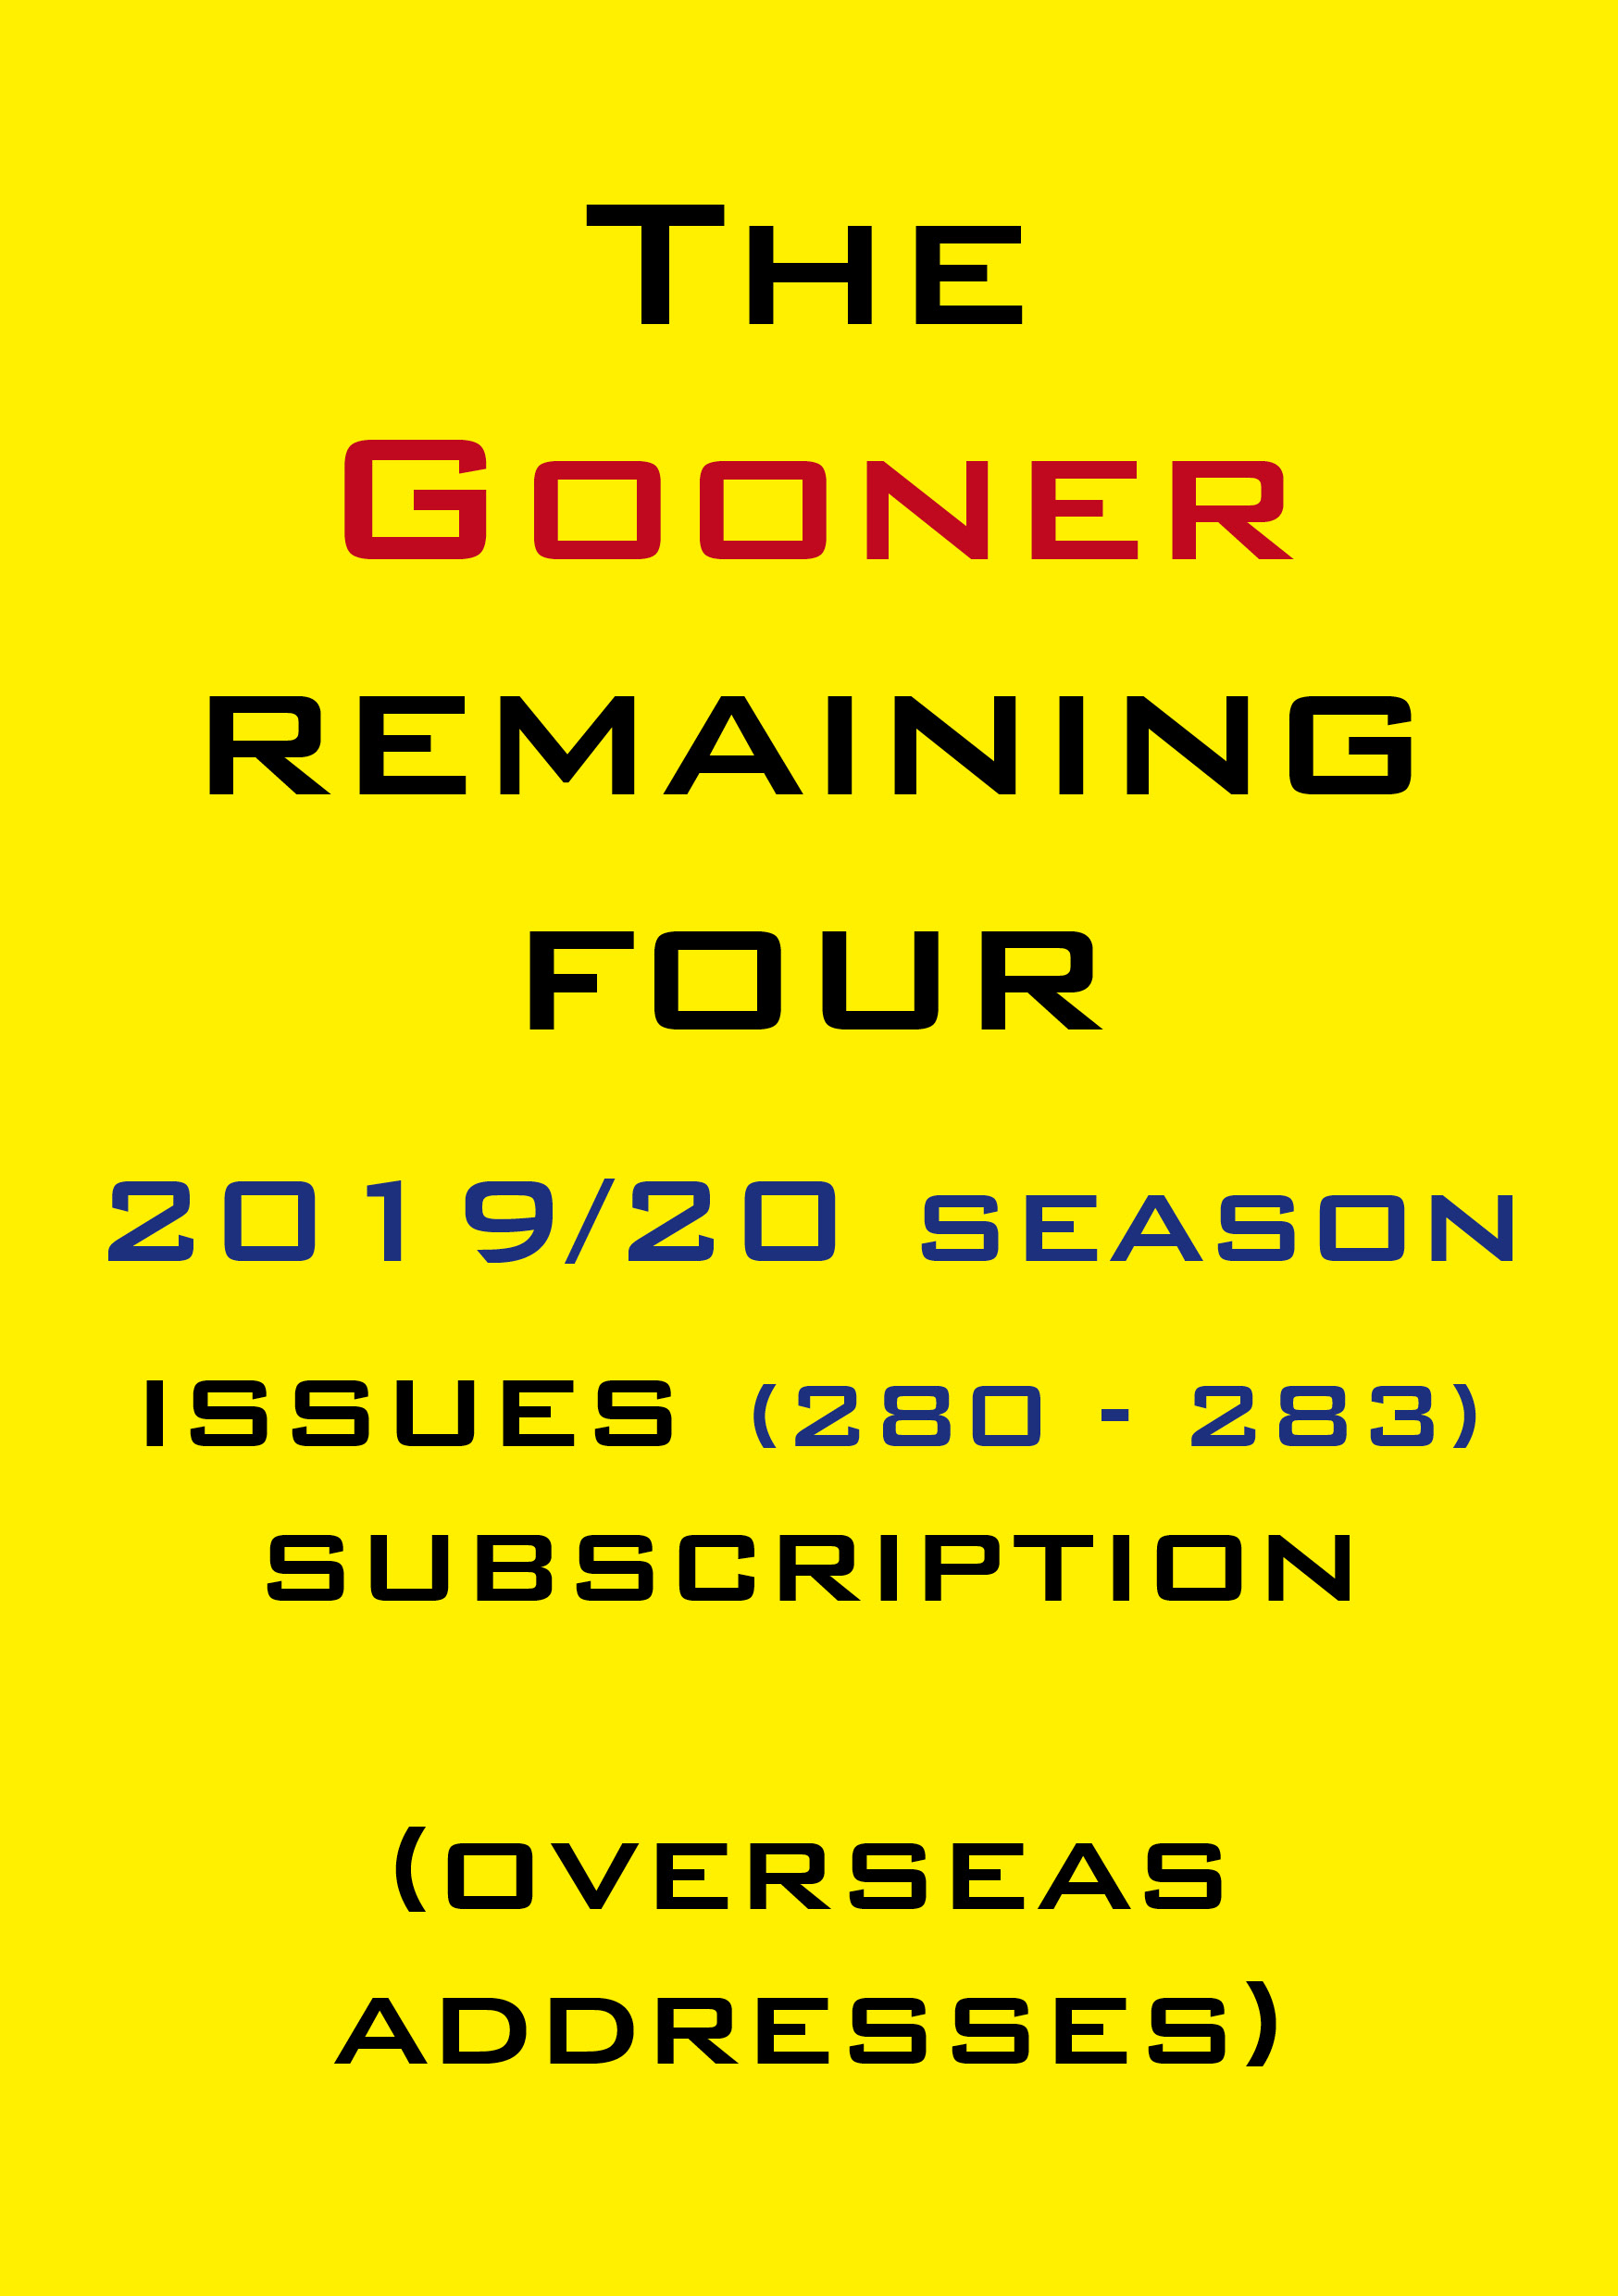 1f. The Gooner! - 4 remaining 2019/20 issues subscription Abroad